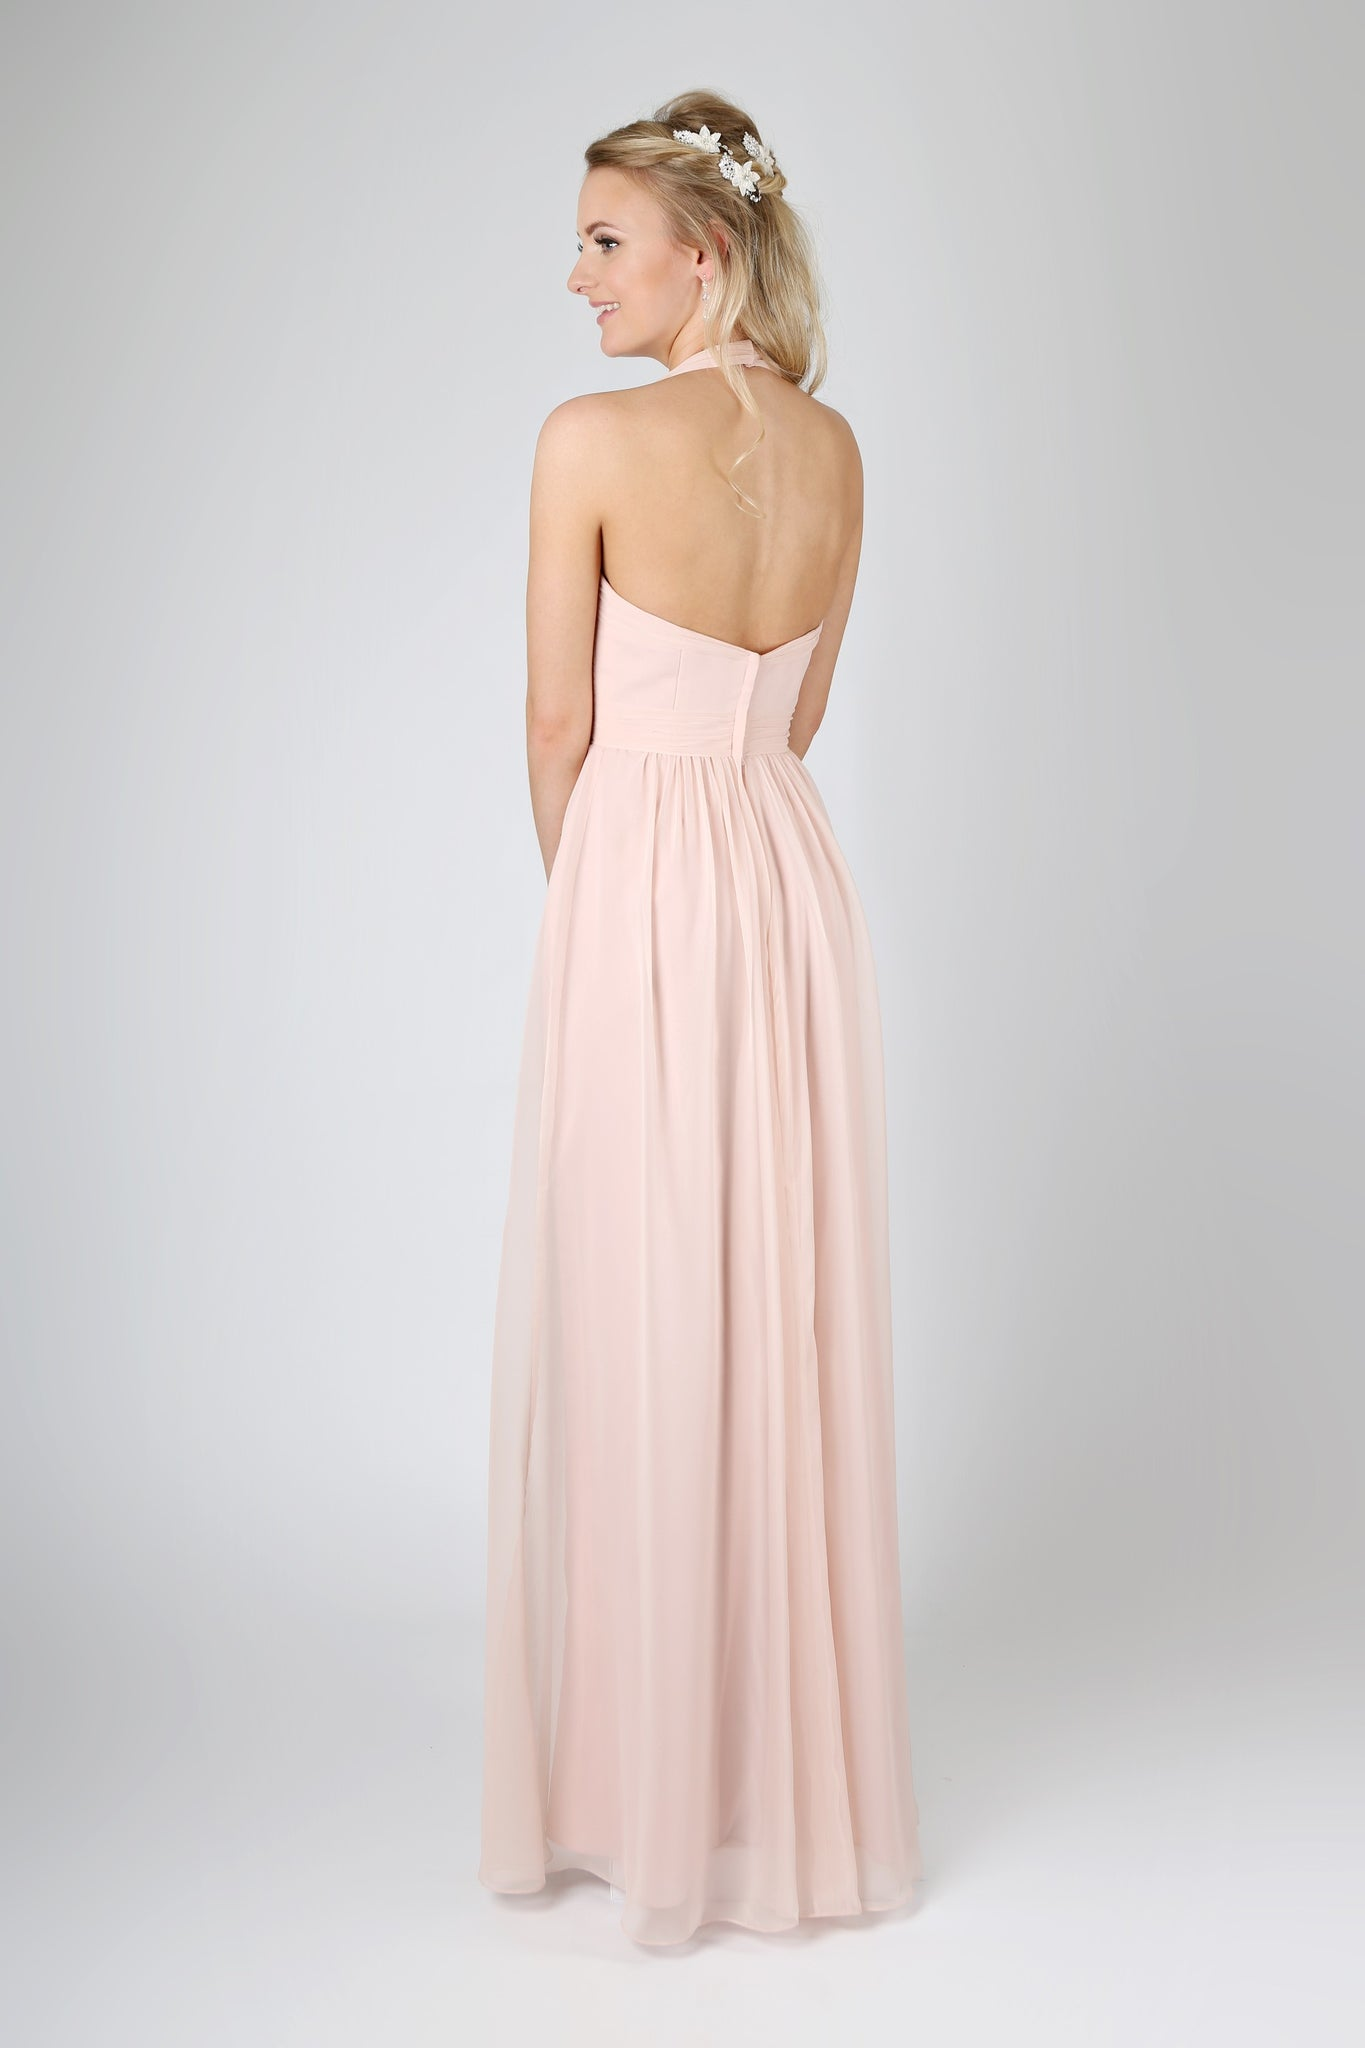 Halter-neck dress with ruched bodice, waistband and gathered skirt from the Emma Bridals collection